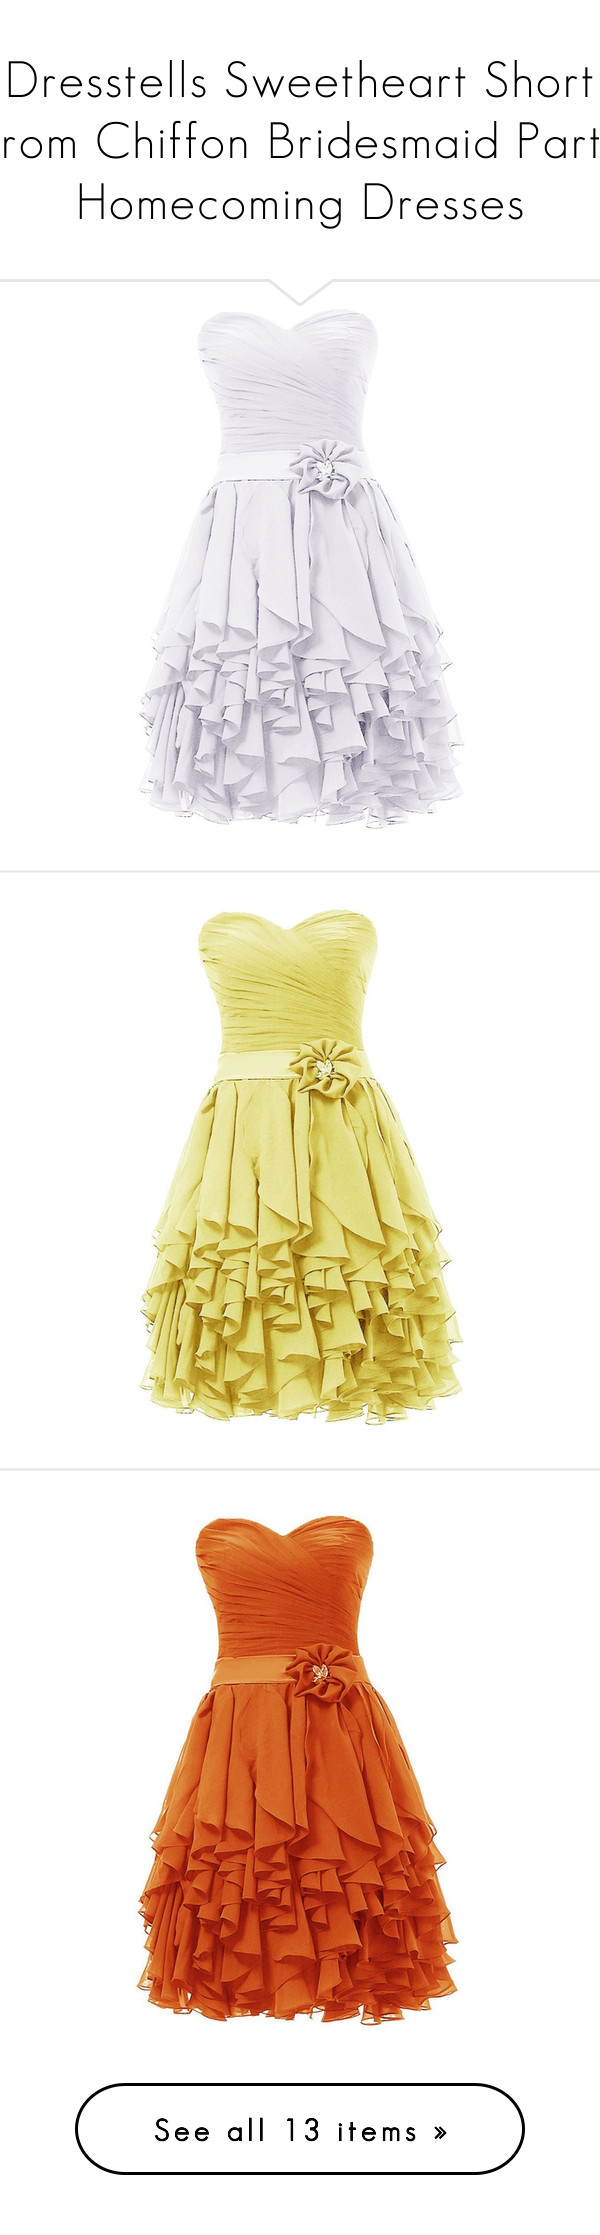 """Dresstells Sweetheart Short Prom Chiffon Bridesmaid Party Homecoming Dresses"" by mackkaz ❤ liked on Polyvore featuring dresses, vestidos, chiffon dress, sweetheart dress, homecoming dresses, bridesmaid dresses, chiffon prom dresses, gowns, yellow and beige cocktail dress"